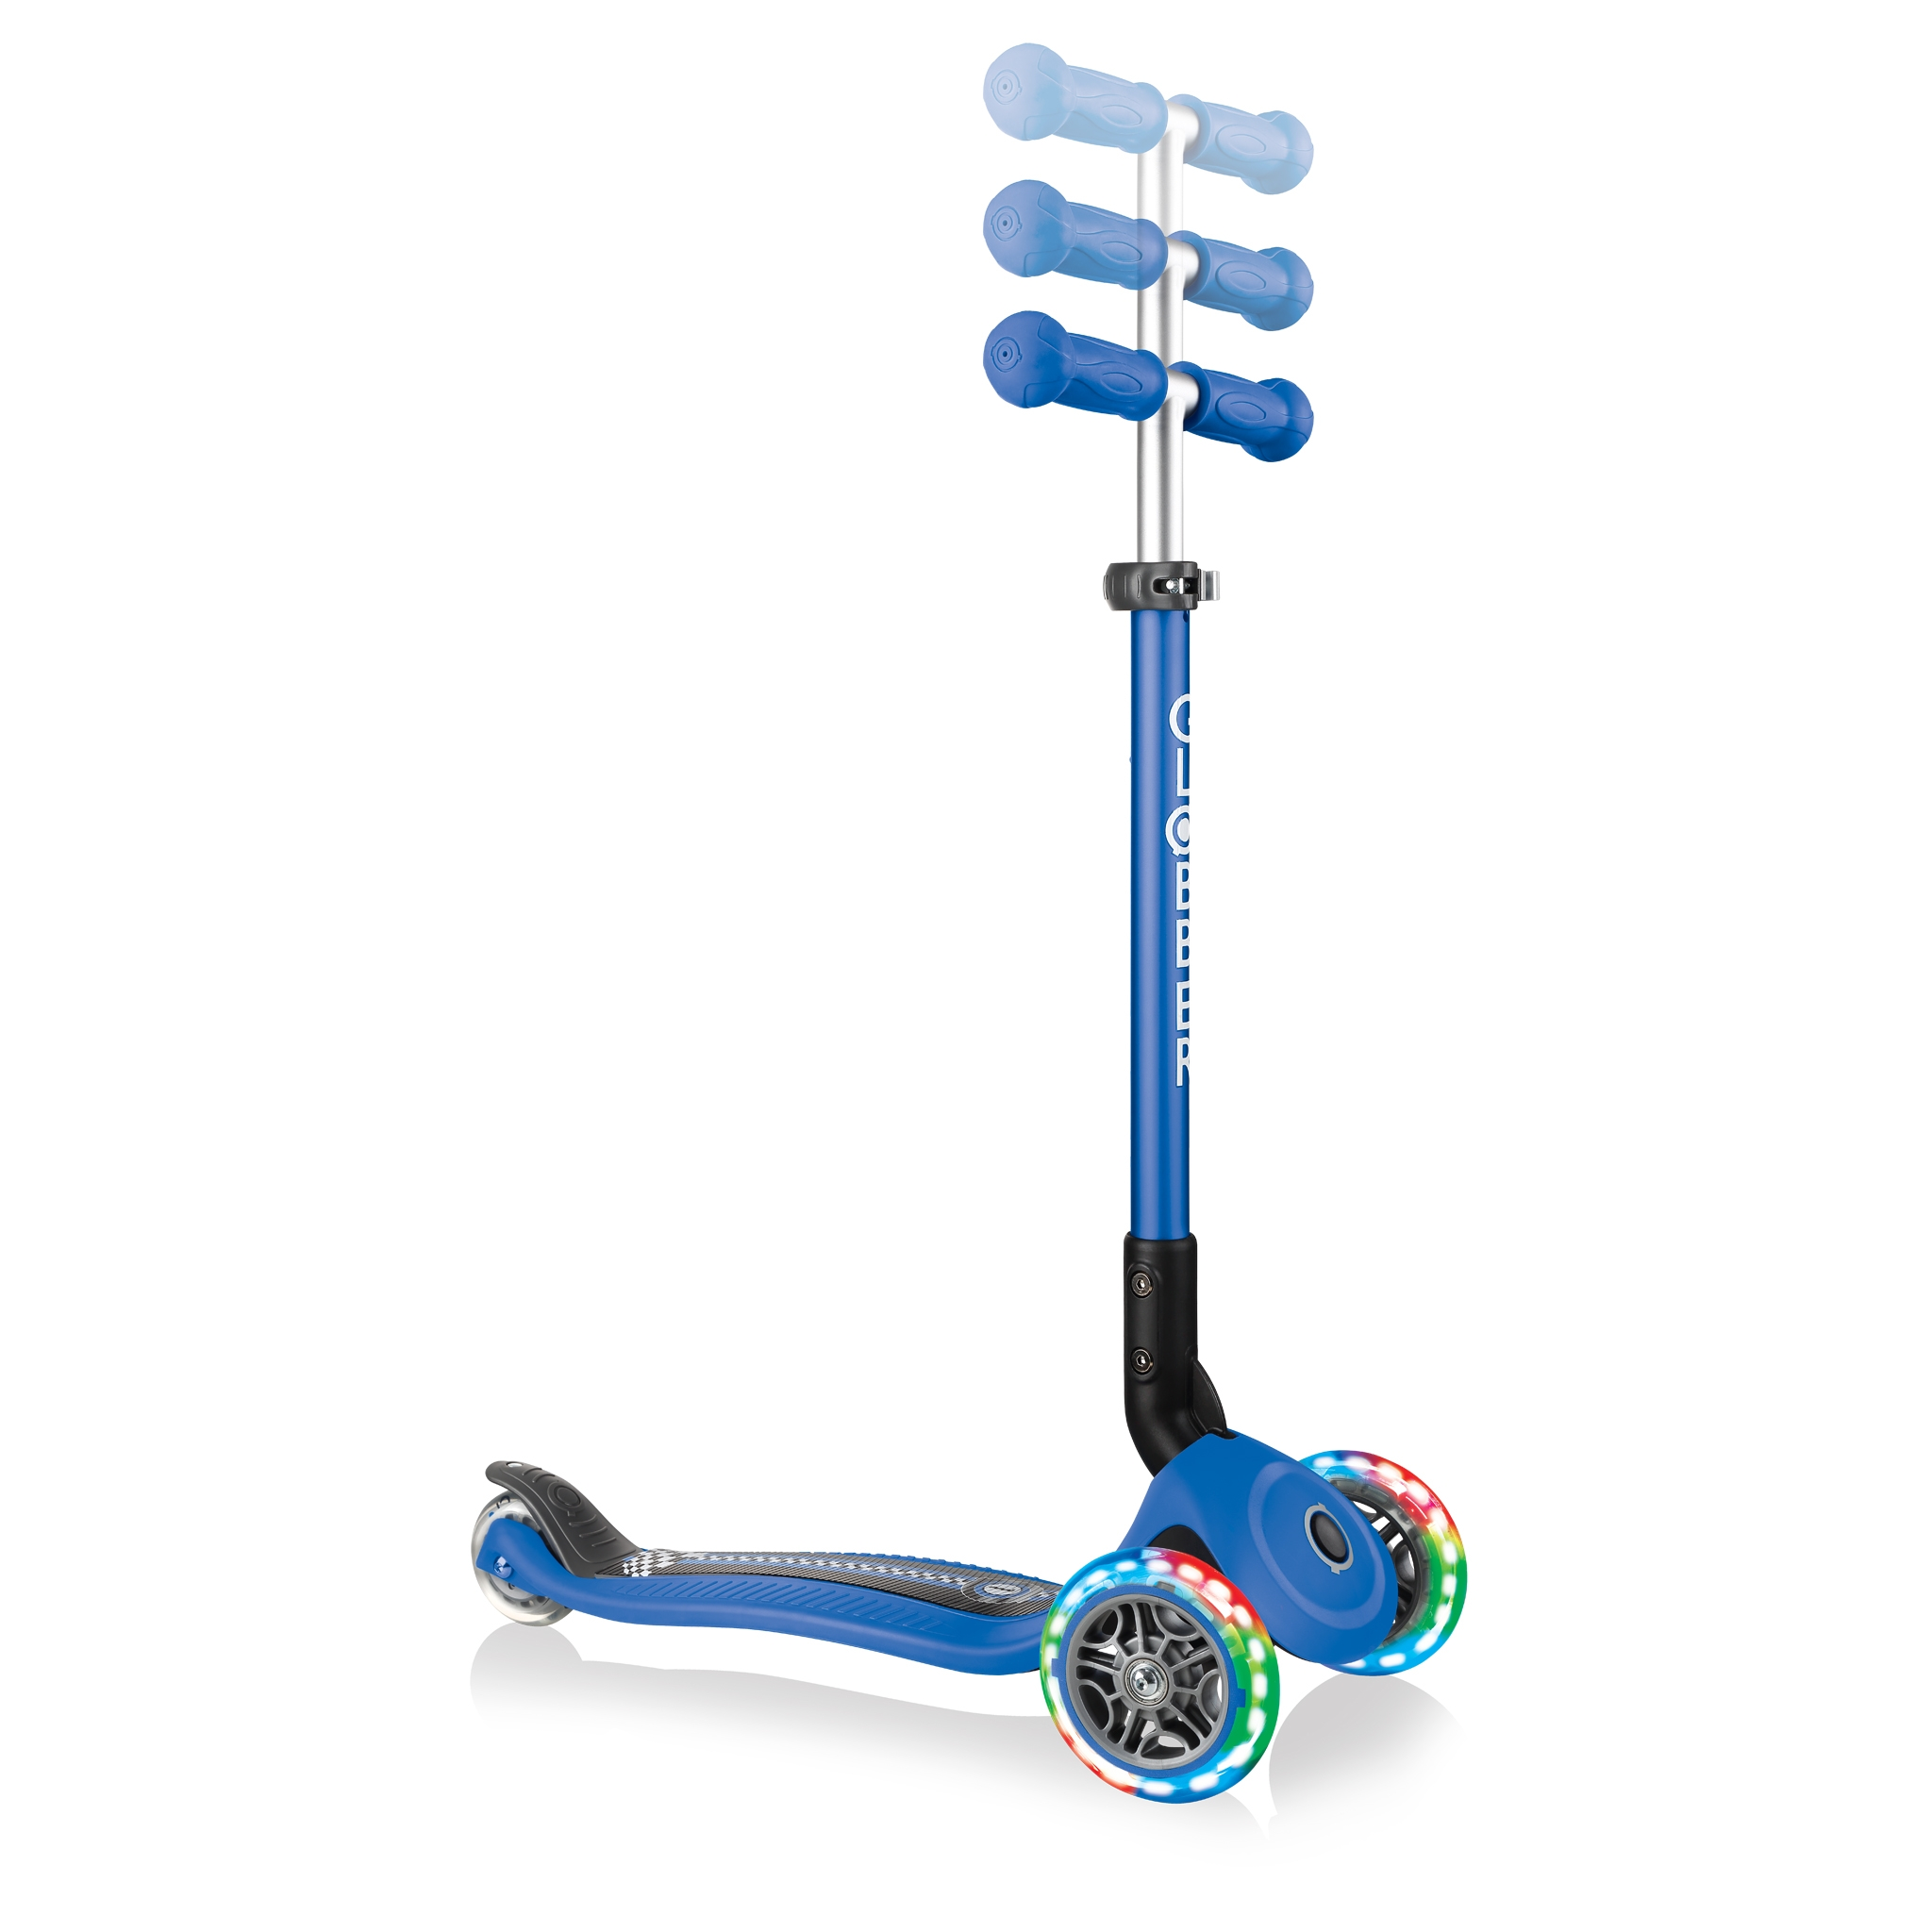 primo-foldable-fantasy-lights-3-wheel-light-up-scooter-with-adjustable-T-bar 3